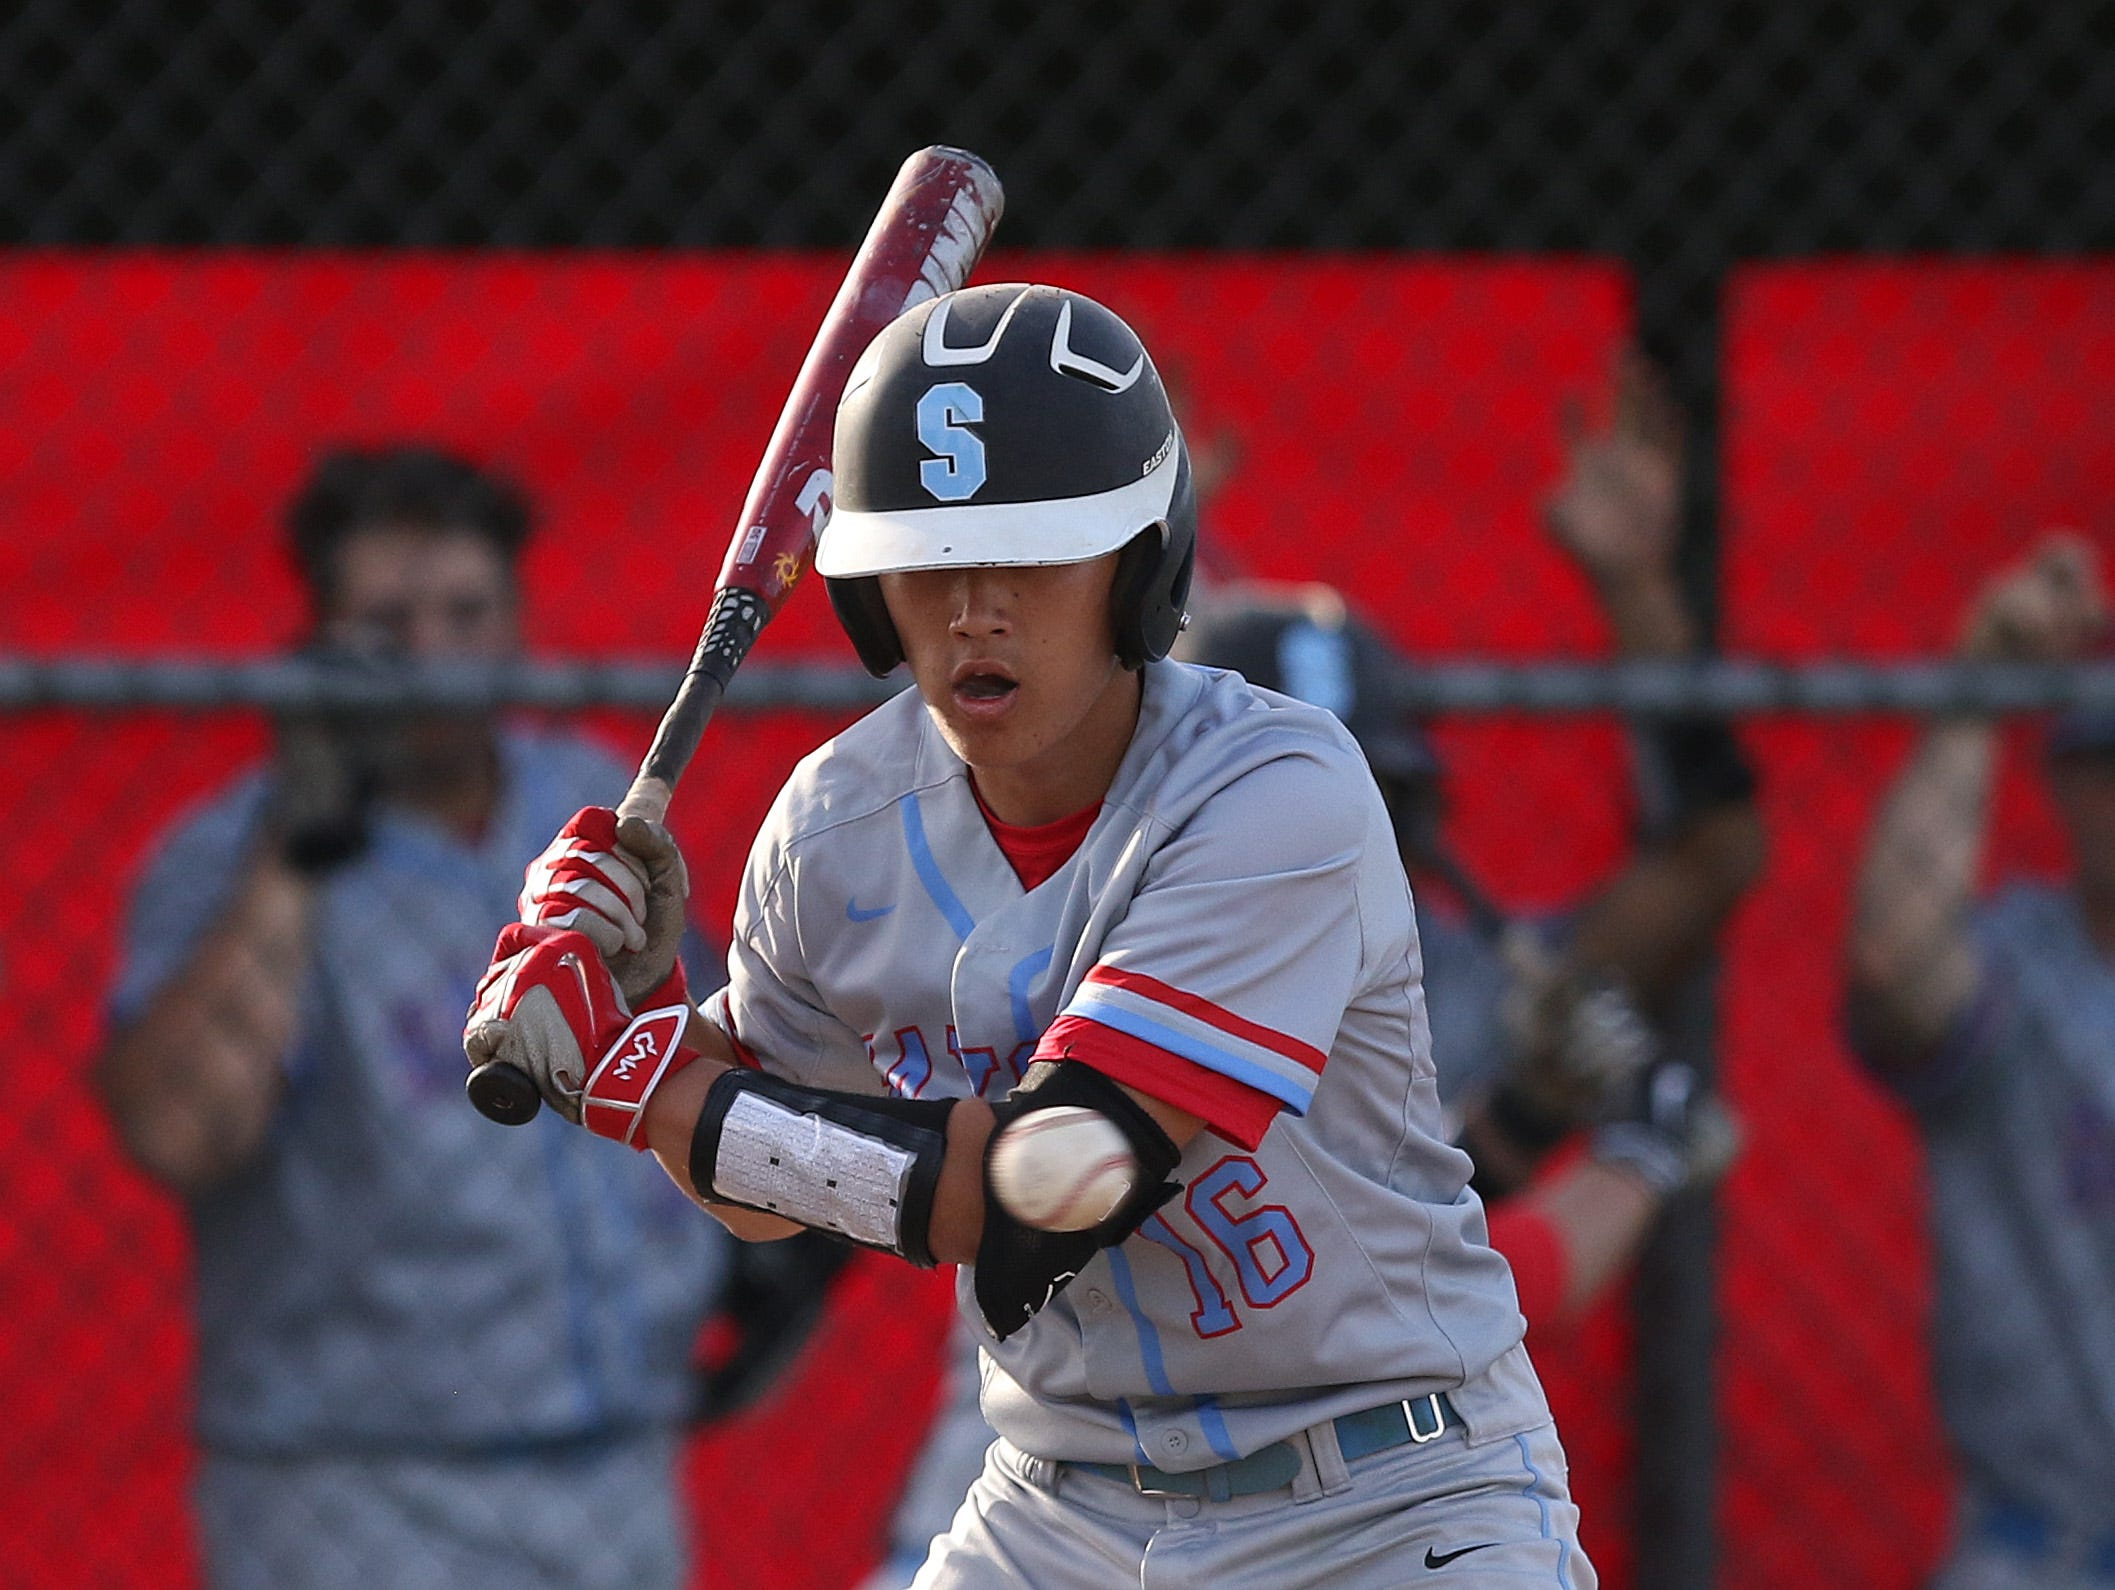 South Salem's Tori Doten bats as the Saxons defeat North Salem 8-1 on Friday, April 8, 2016, during a Greater Valley Conference game.